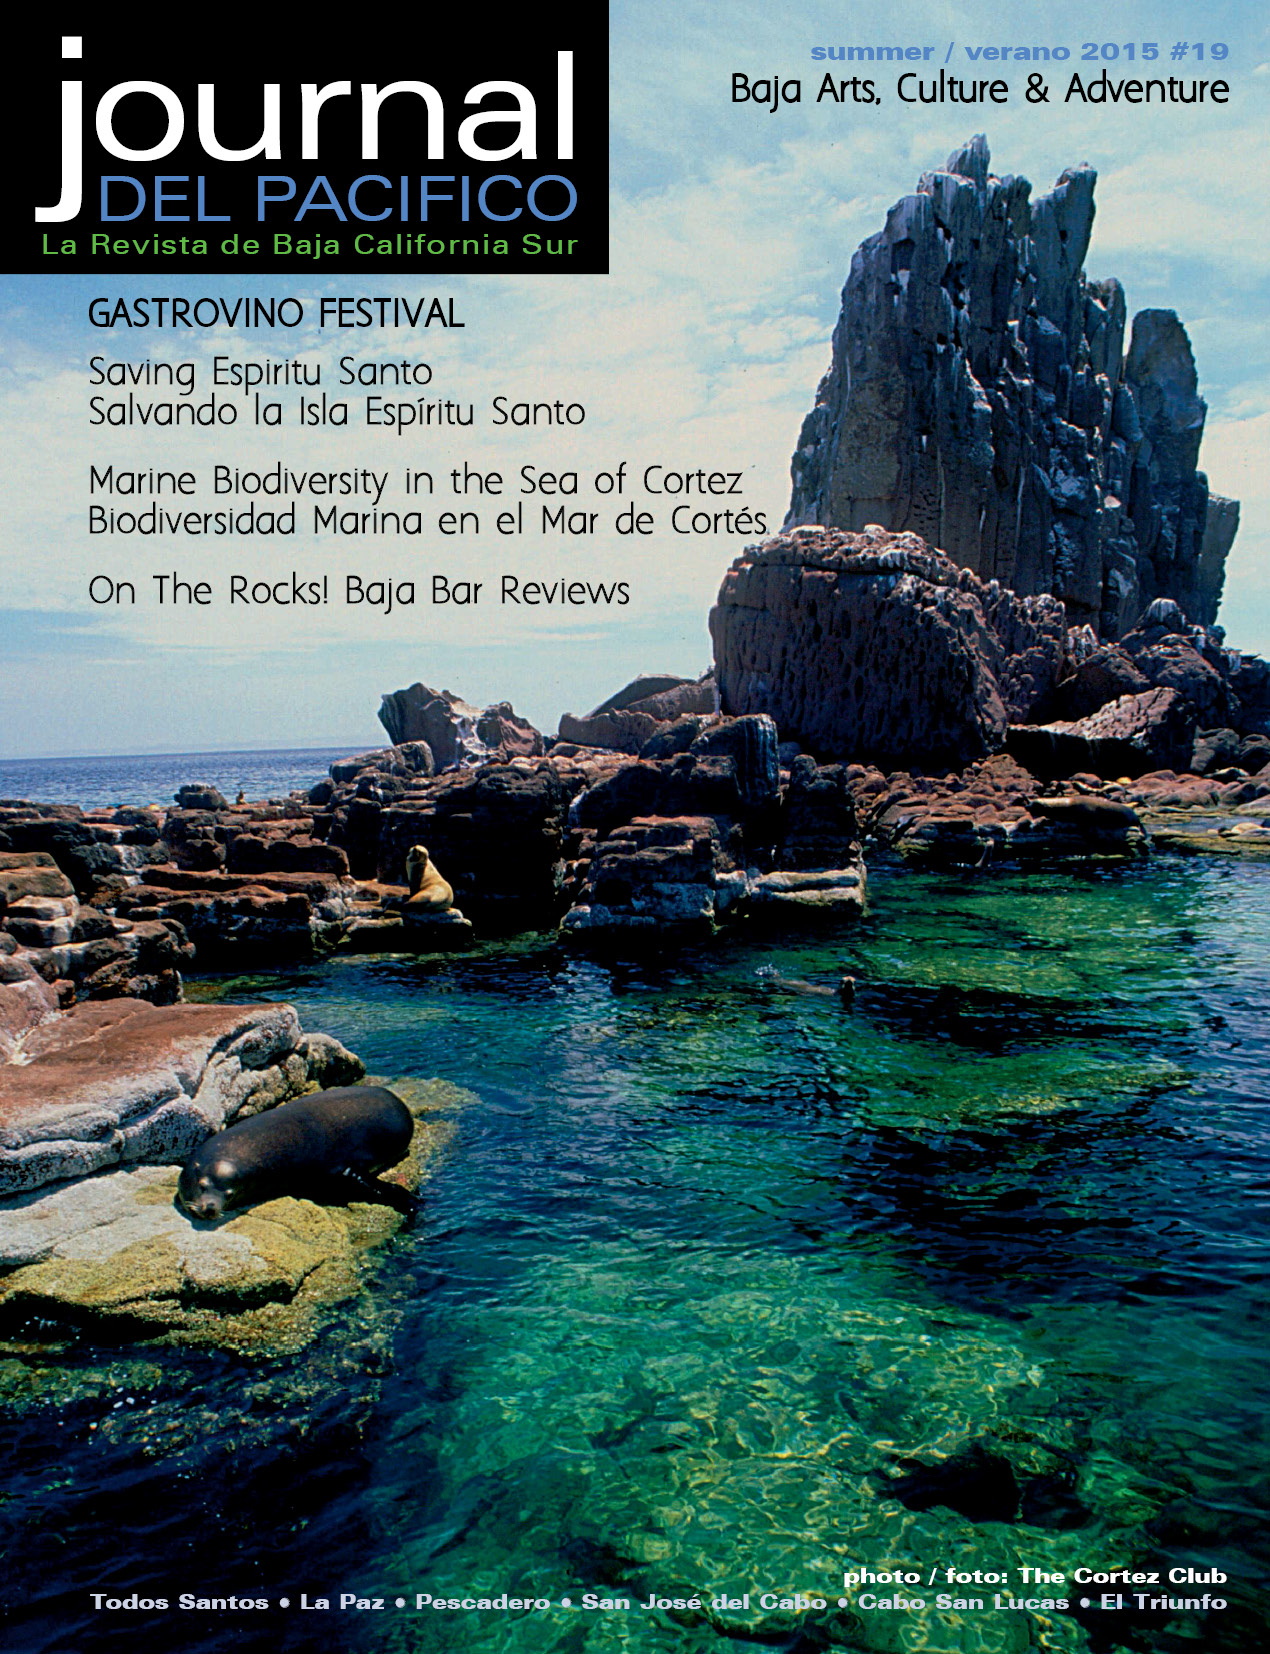 Spring 2015 Issue of Journal del Pacifico